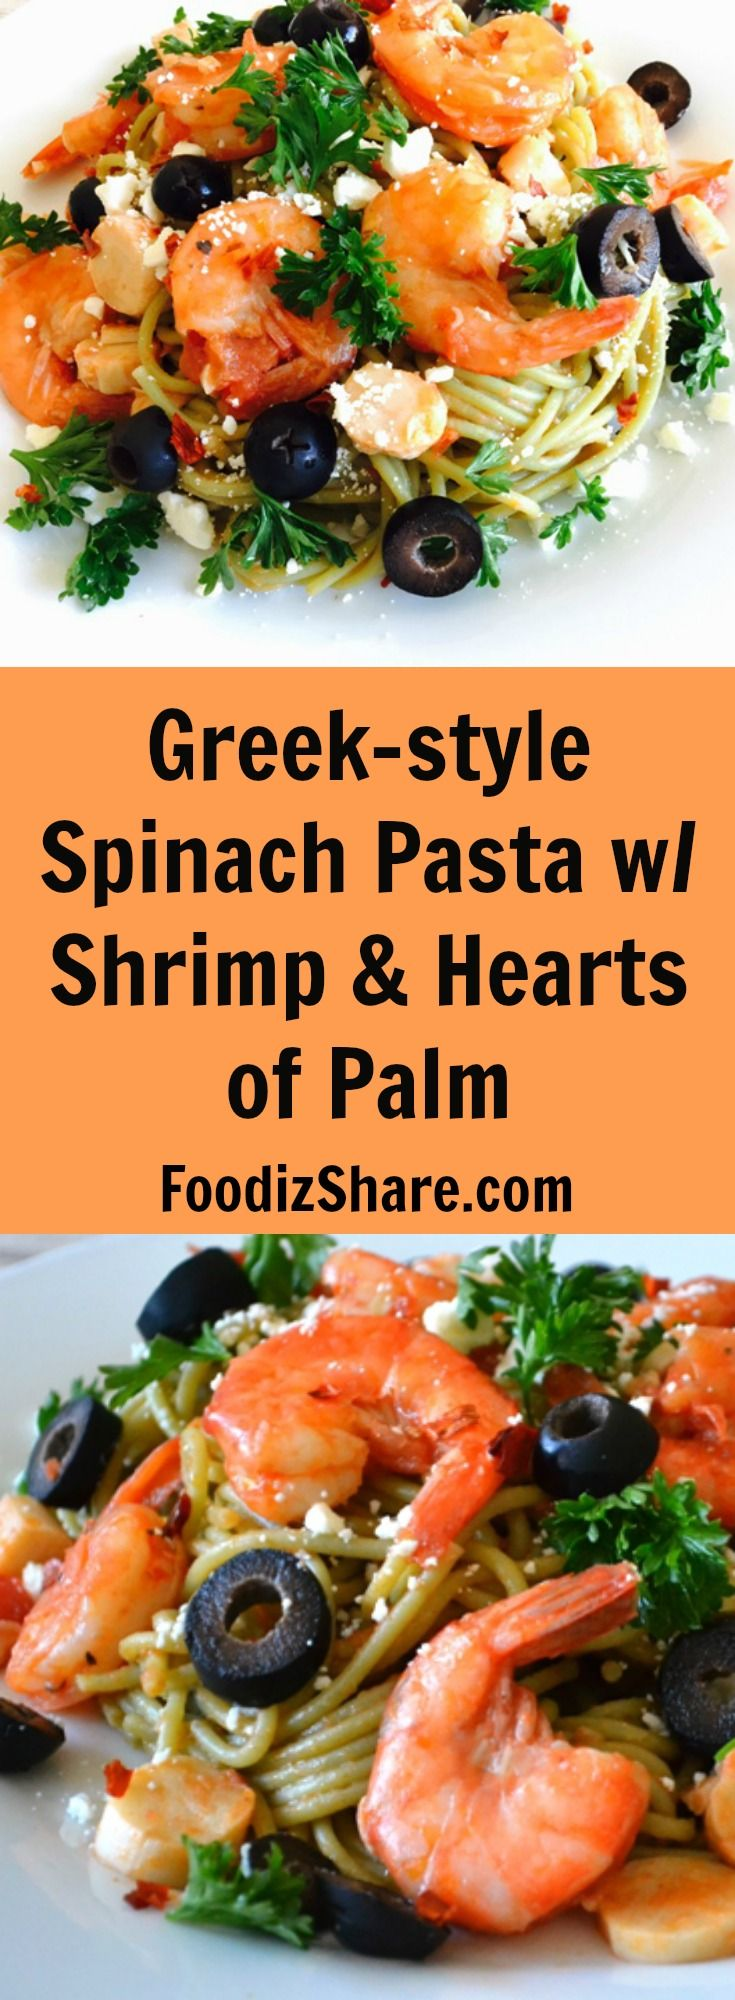 This Greek style #shrimp #pasta made  using spinach pasta, tomatoes, garlic, feta cheese, olive oil is healthy and hearty. #recipe #healthy #healthyrecipes #food #greek #mediterranean #easyrecipes #dinner